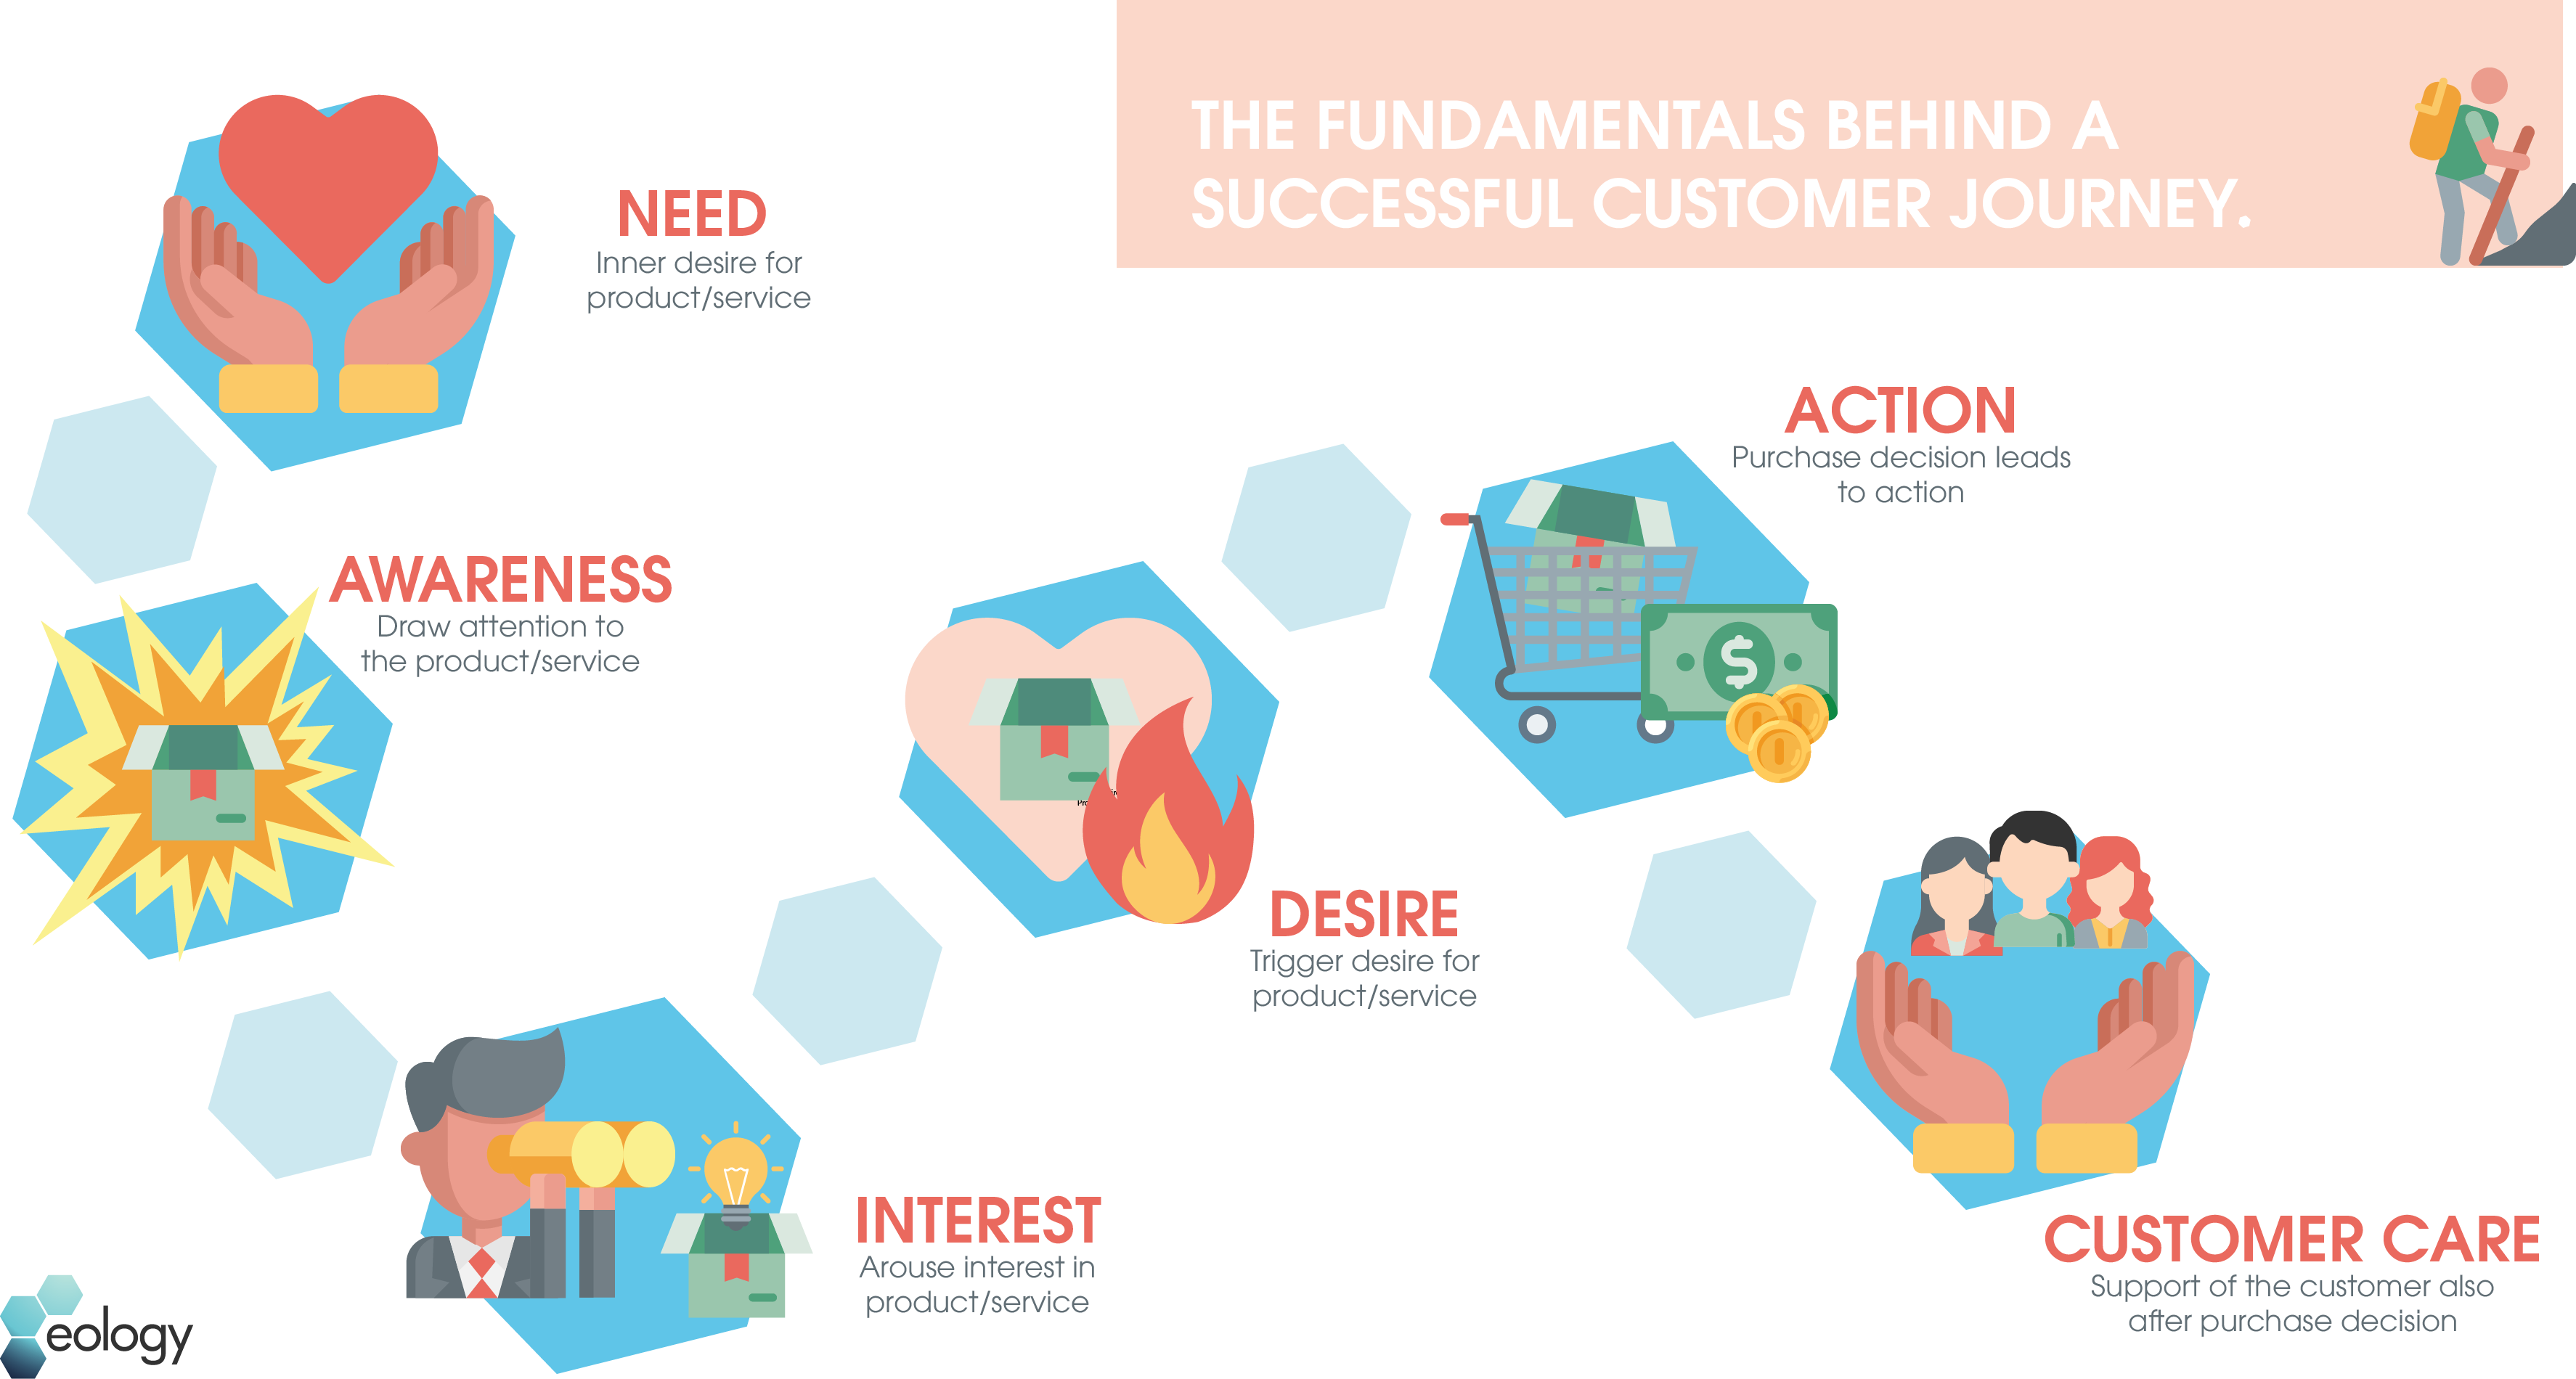 This is what lies behind a successful customer journey - You should pay attention to these basic phases: Need, Awareness, Interest, Desire, Action and Customer Care